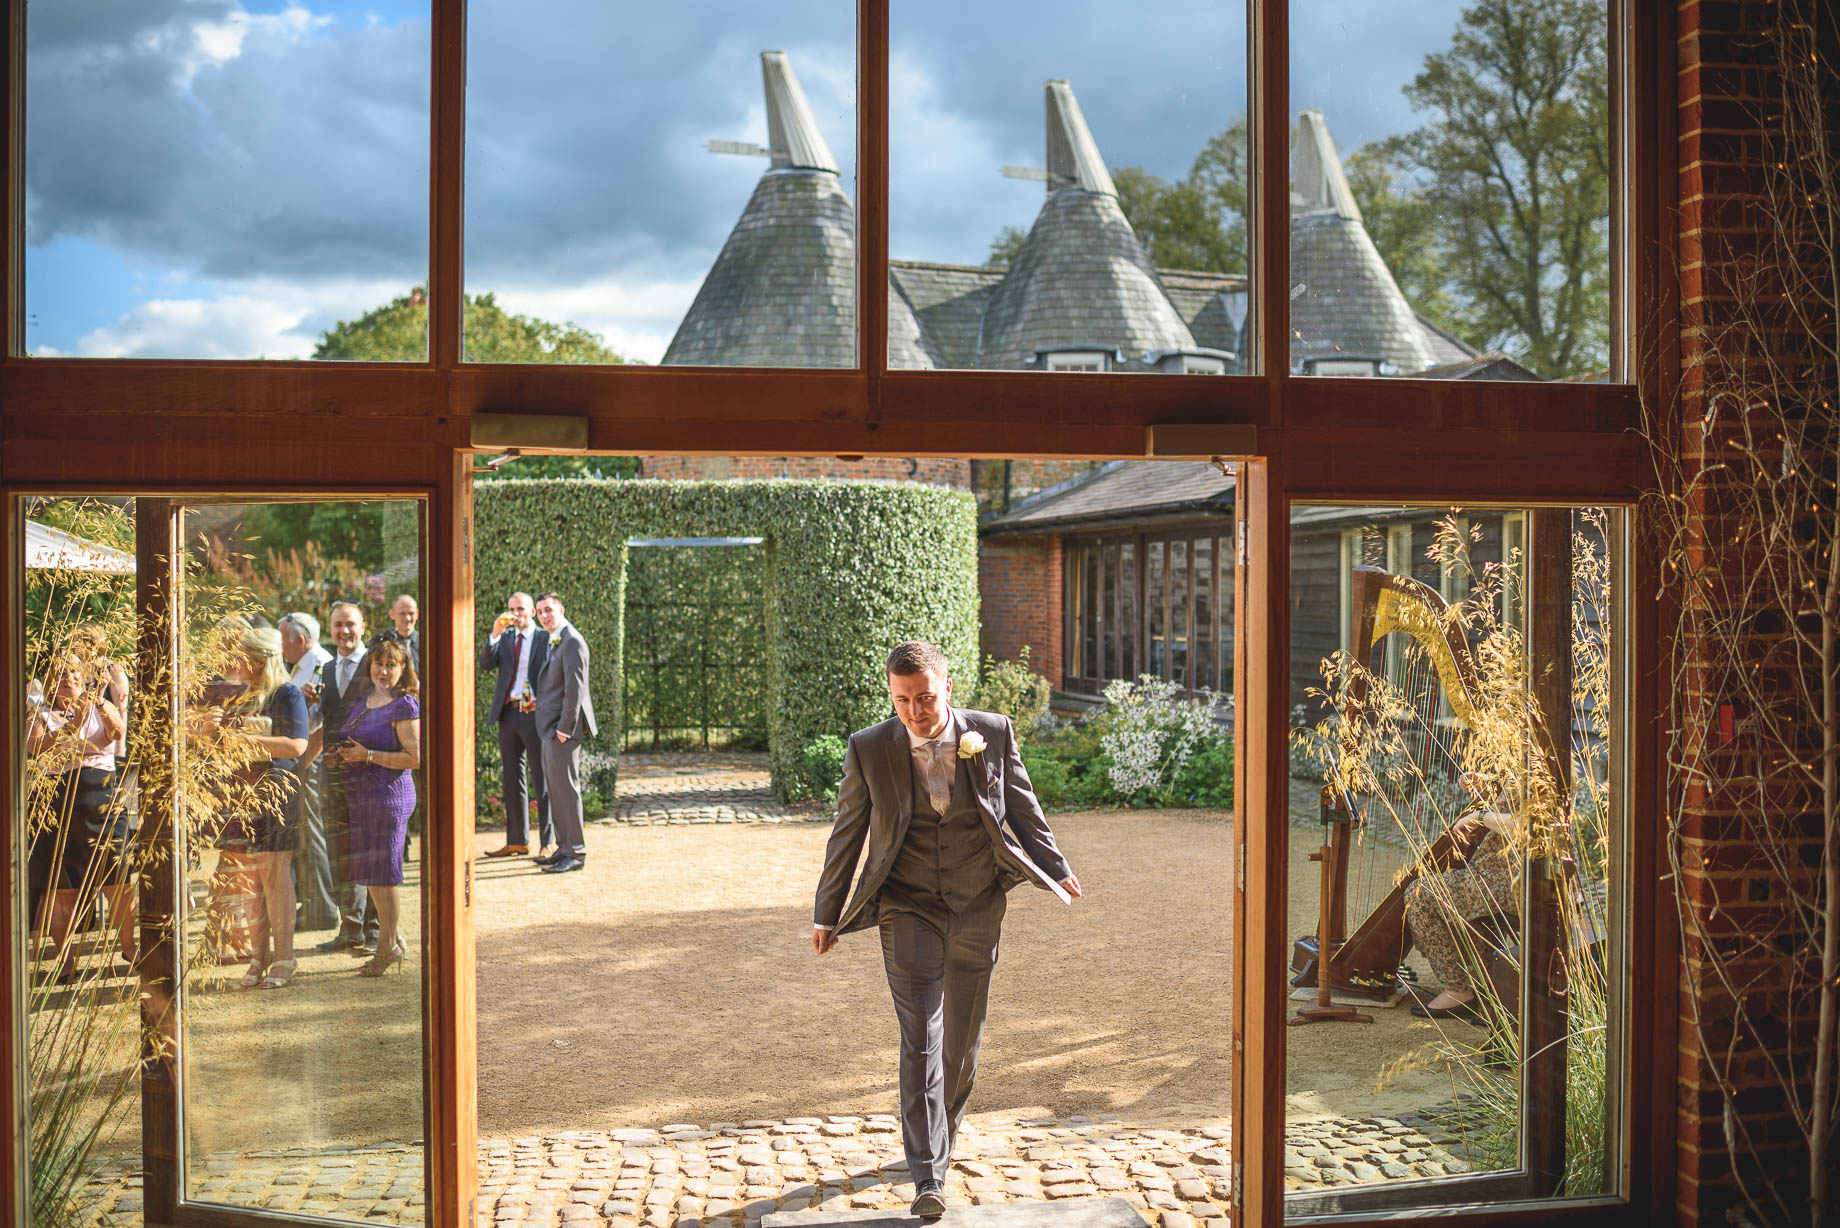 Bury Court Barn wedding photography - Guy Collier - Kirsty and Lewis (109 of 150)